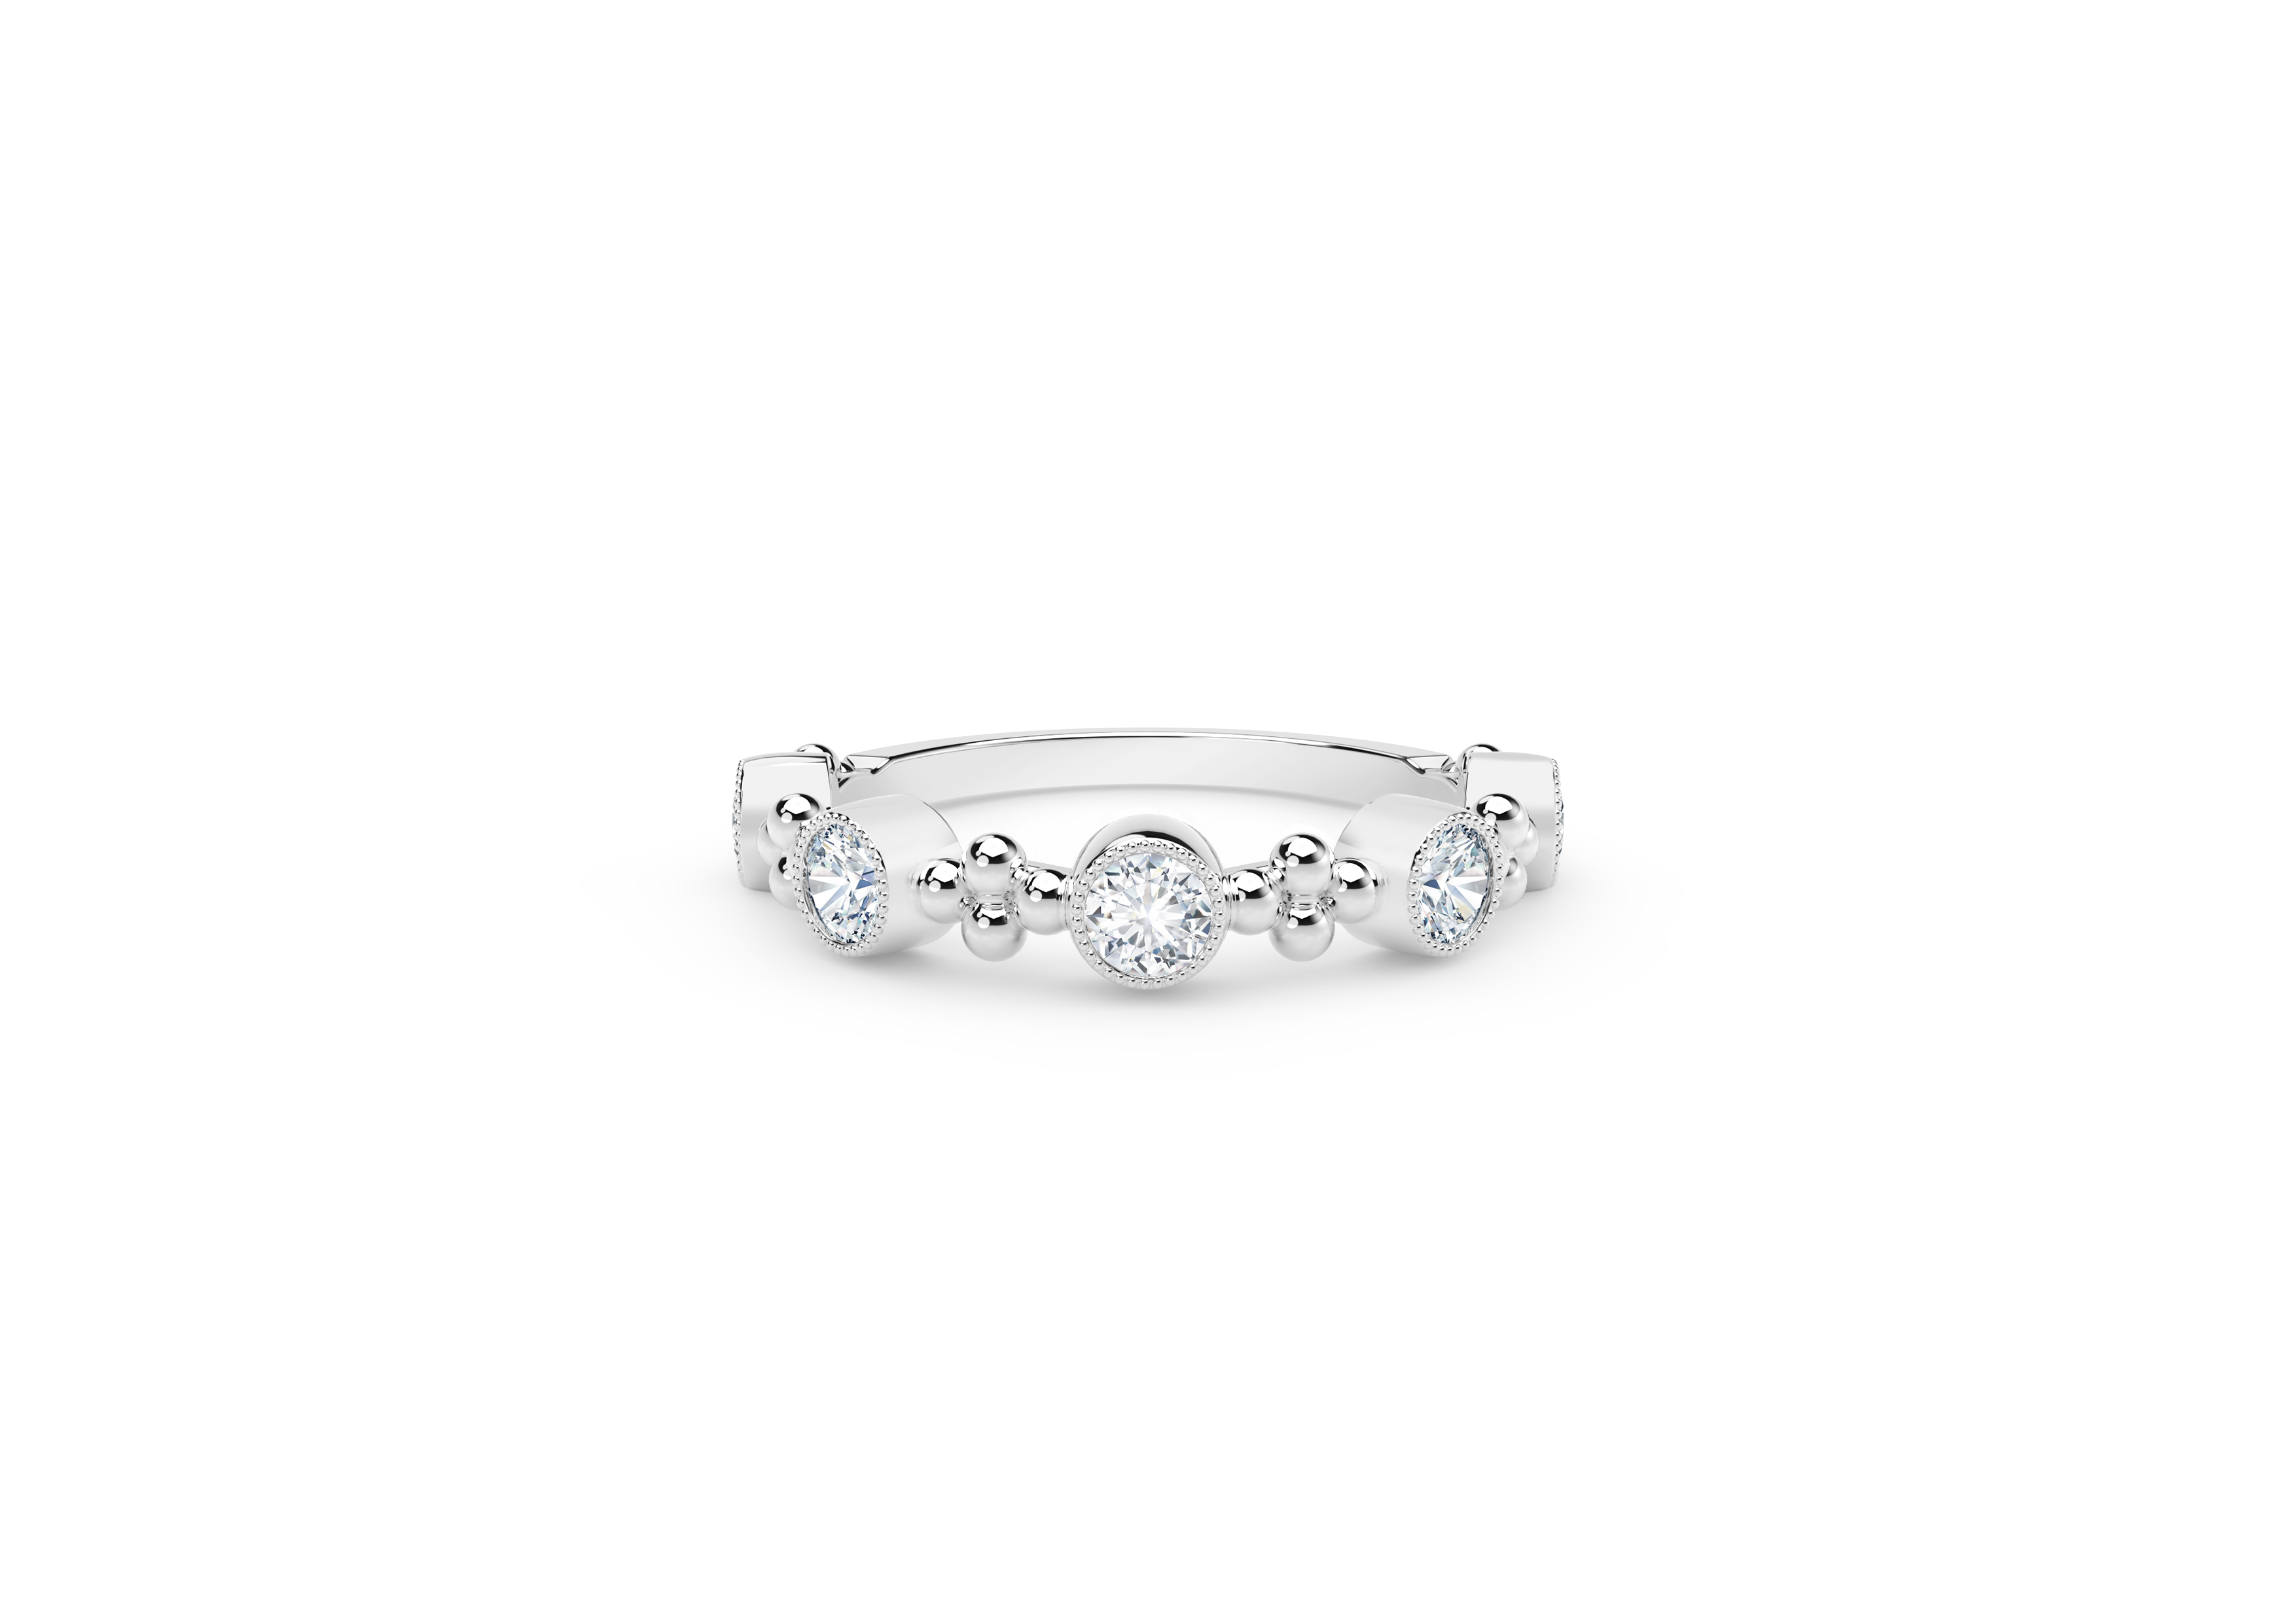 70b505bb3a3 The Forevermark Tribute™ Collection Delicate Diamond Ring - FMT3180